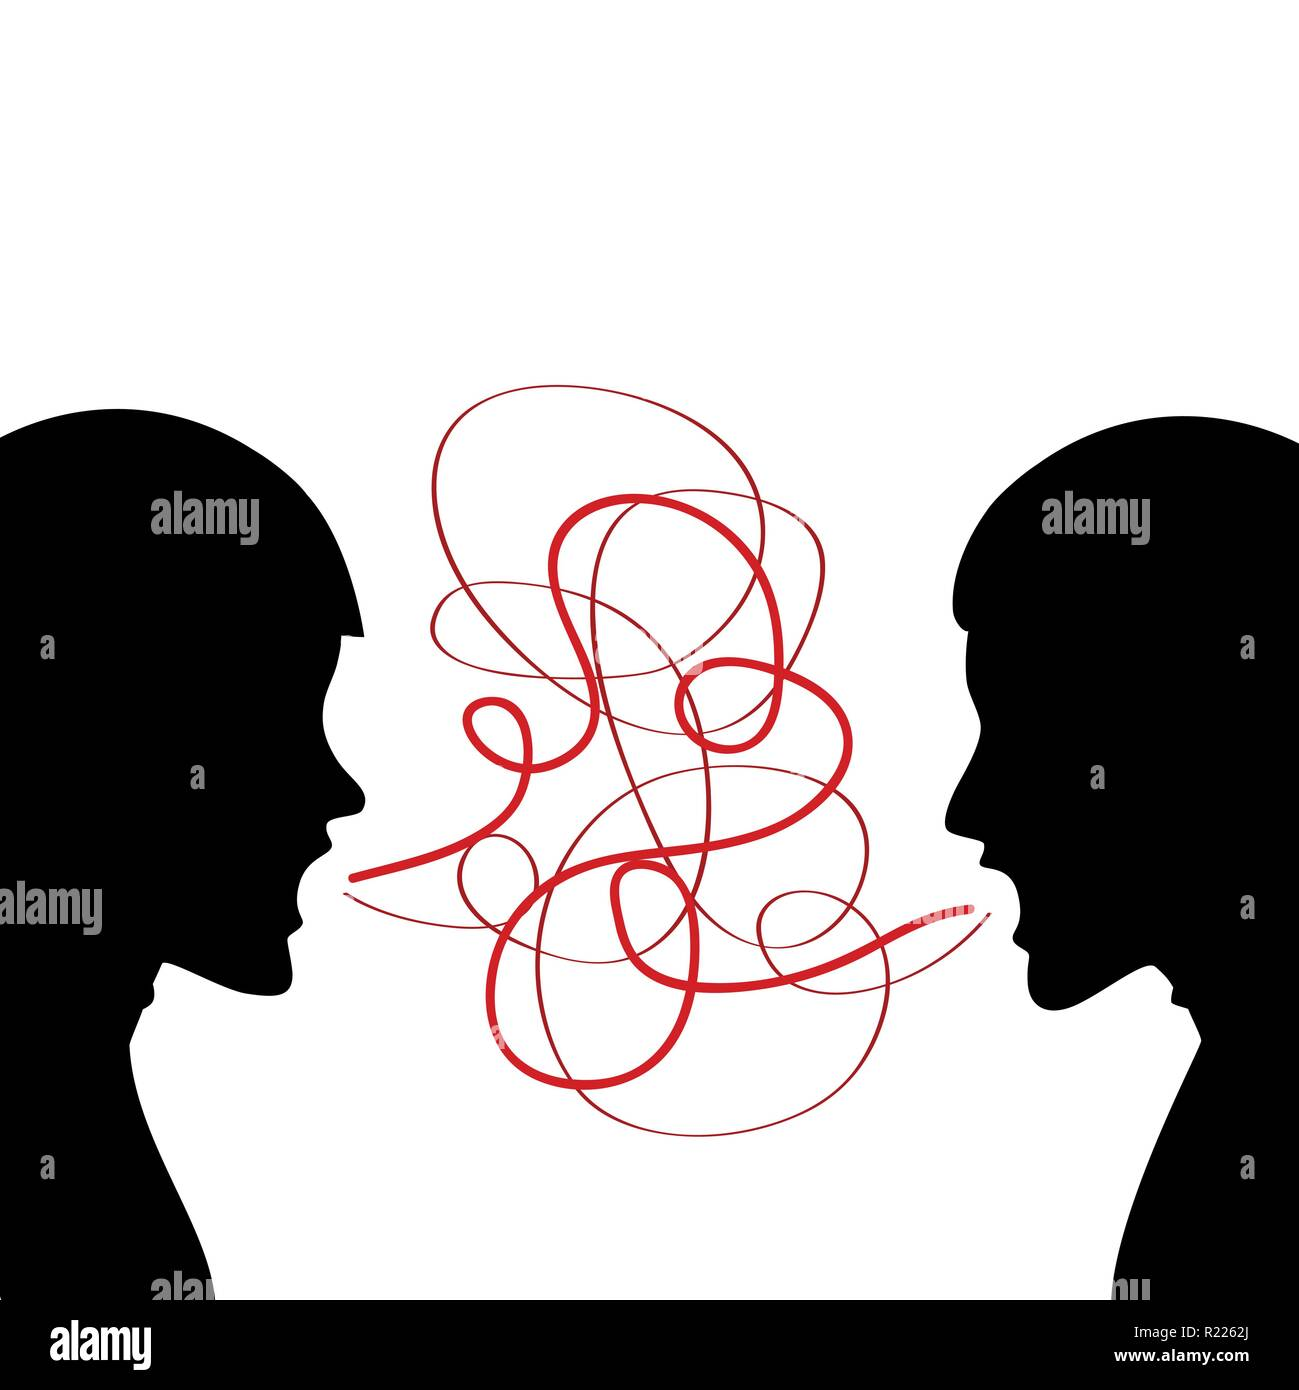 Two men are screaming silhouette vector illustration - Stock Image